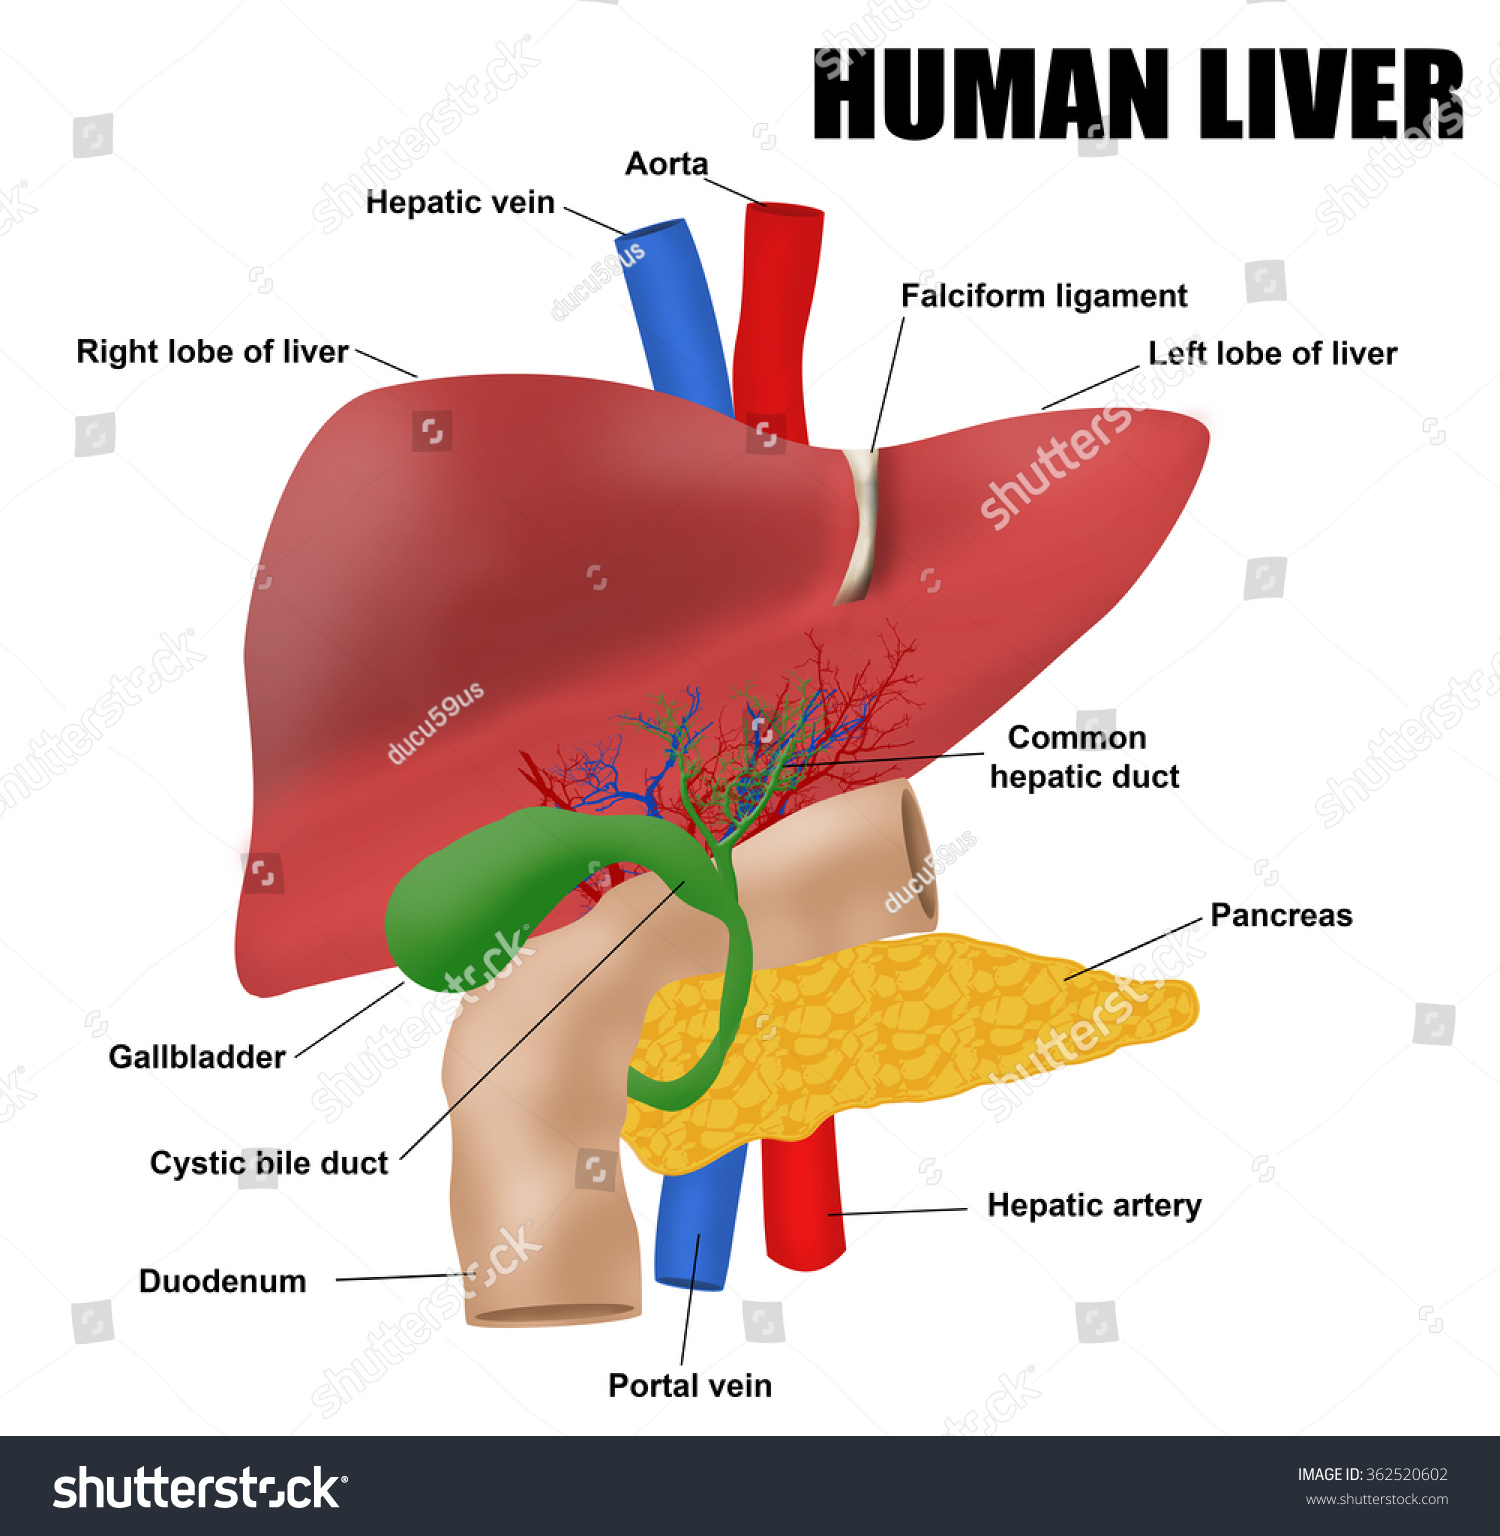 Anatomy Human Liver Vector Illustration For Stock Vector